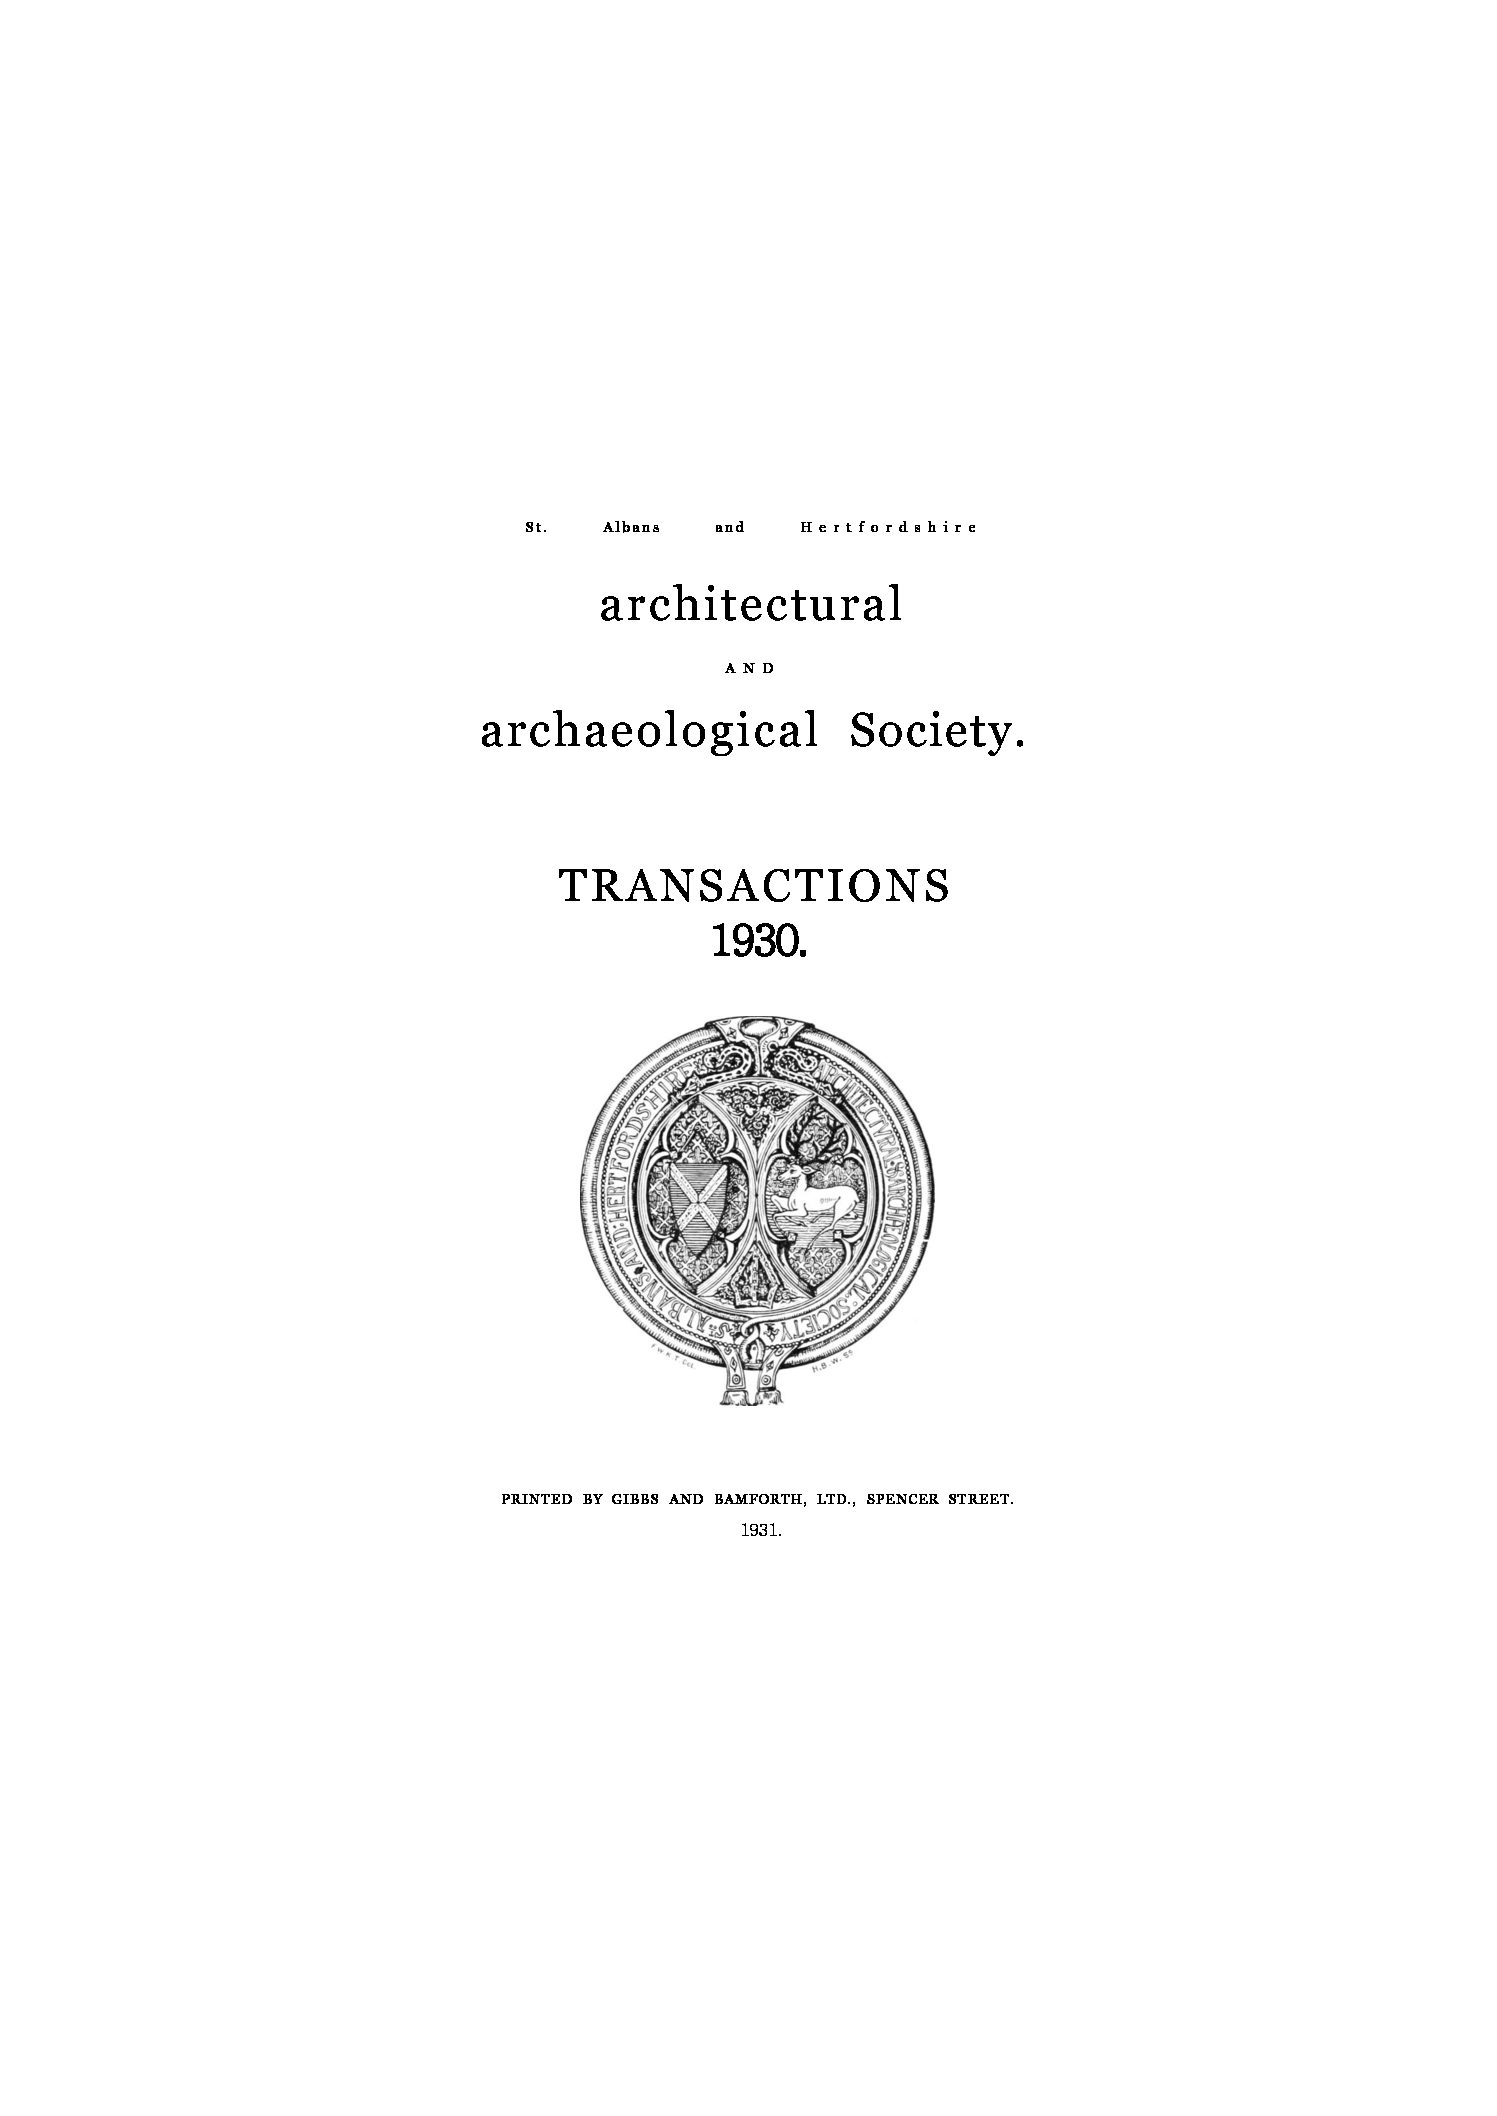 Transactions of the Society (1883-1961)